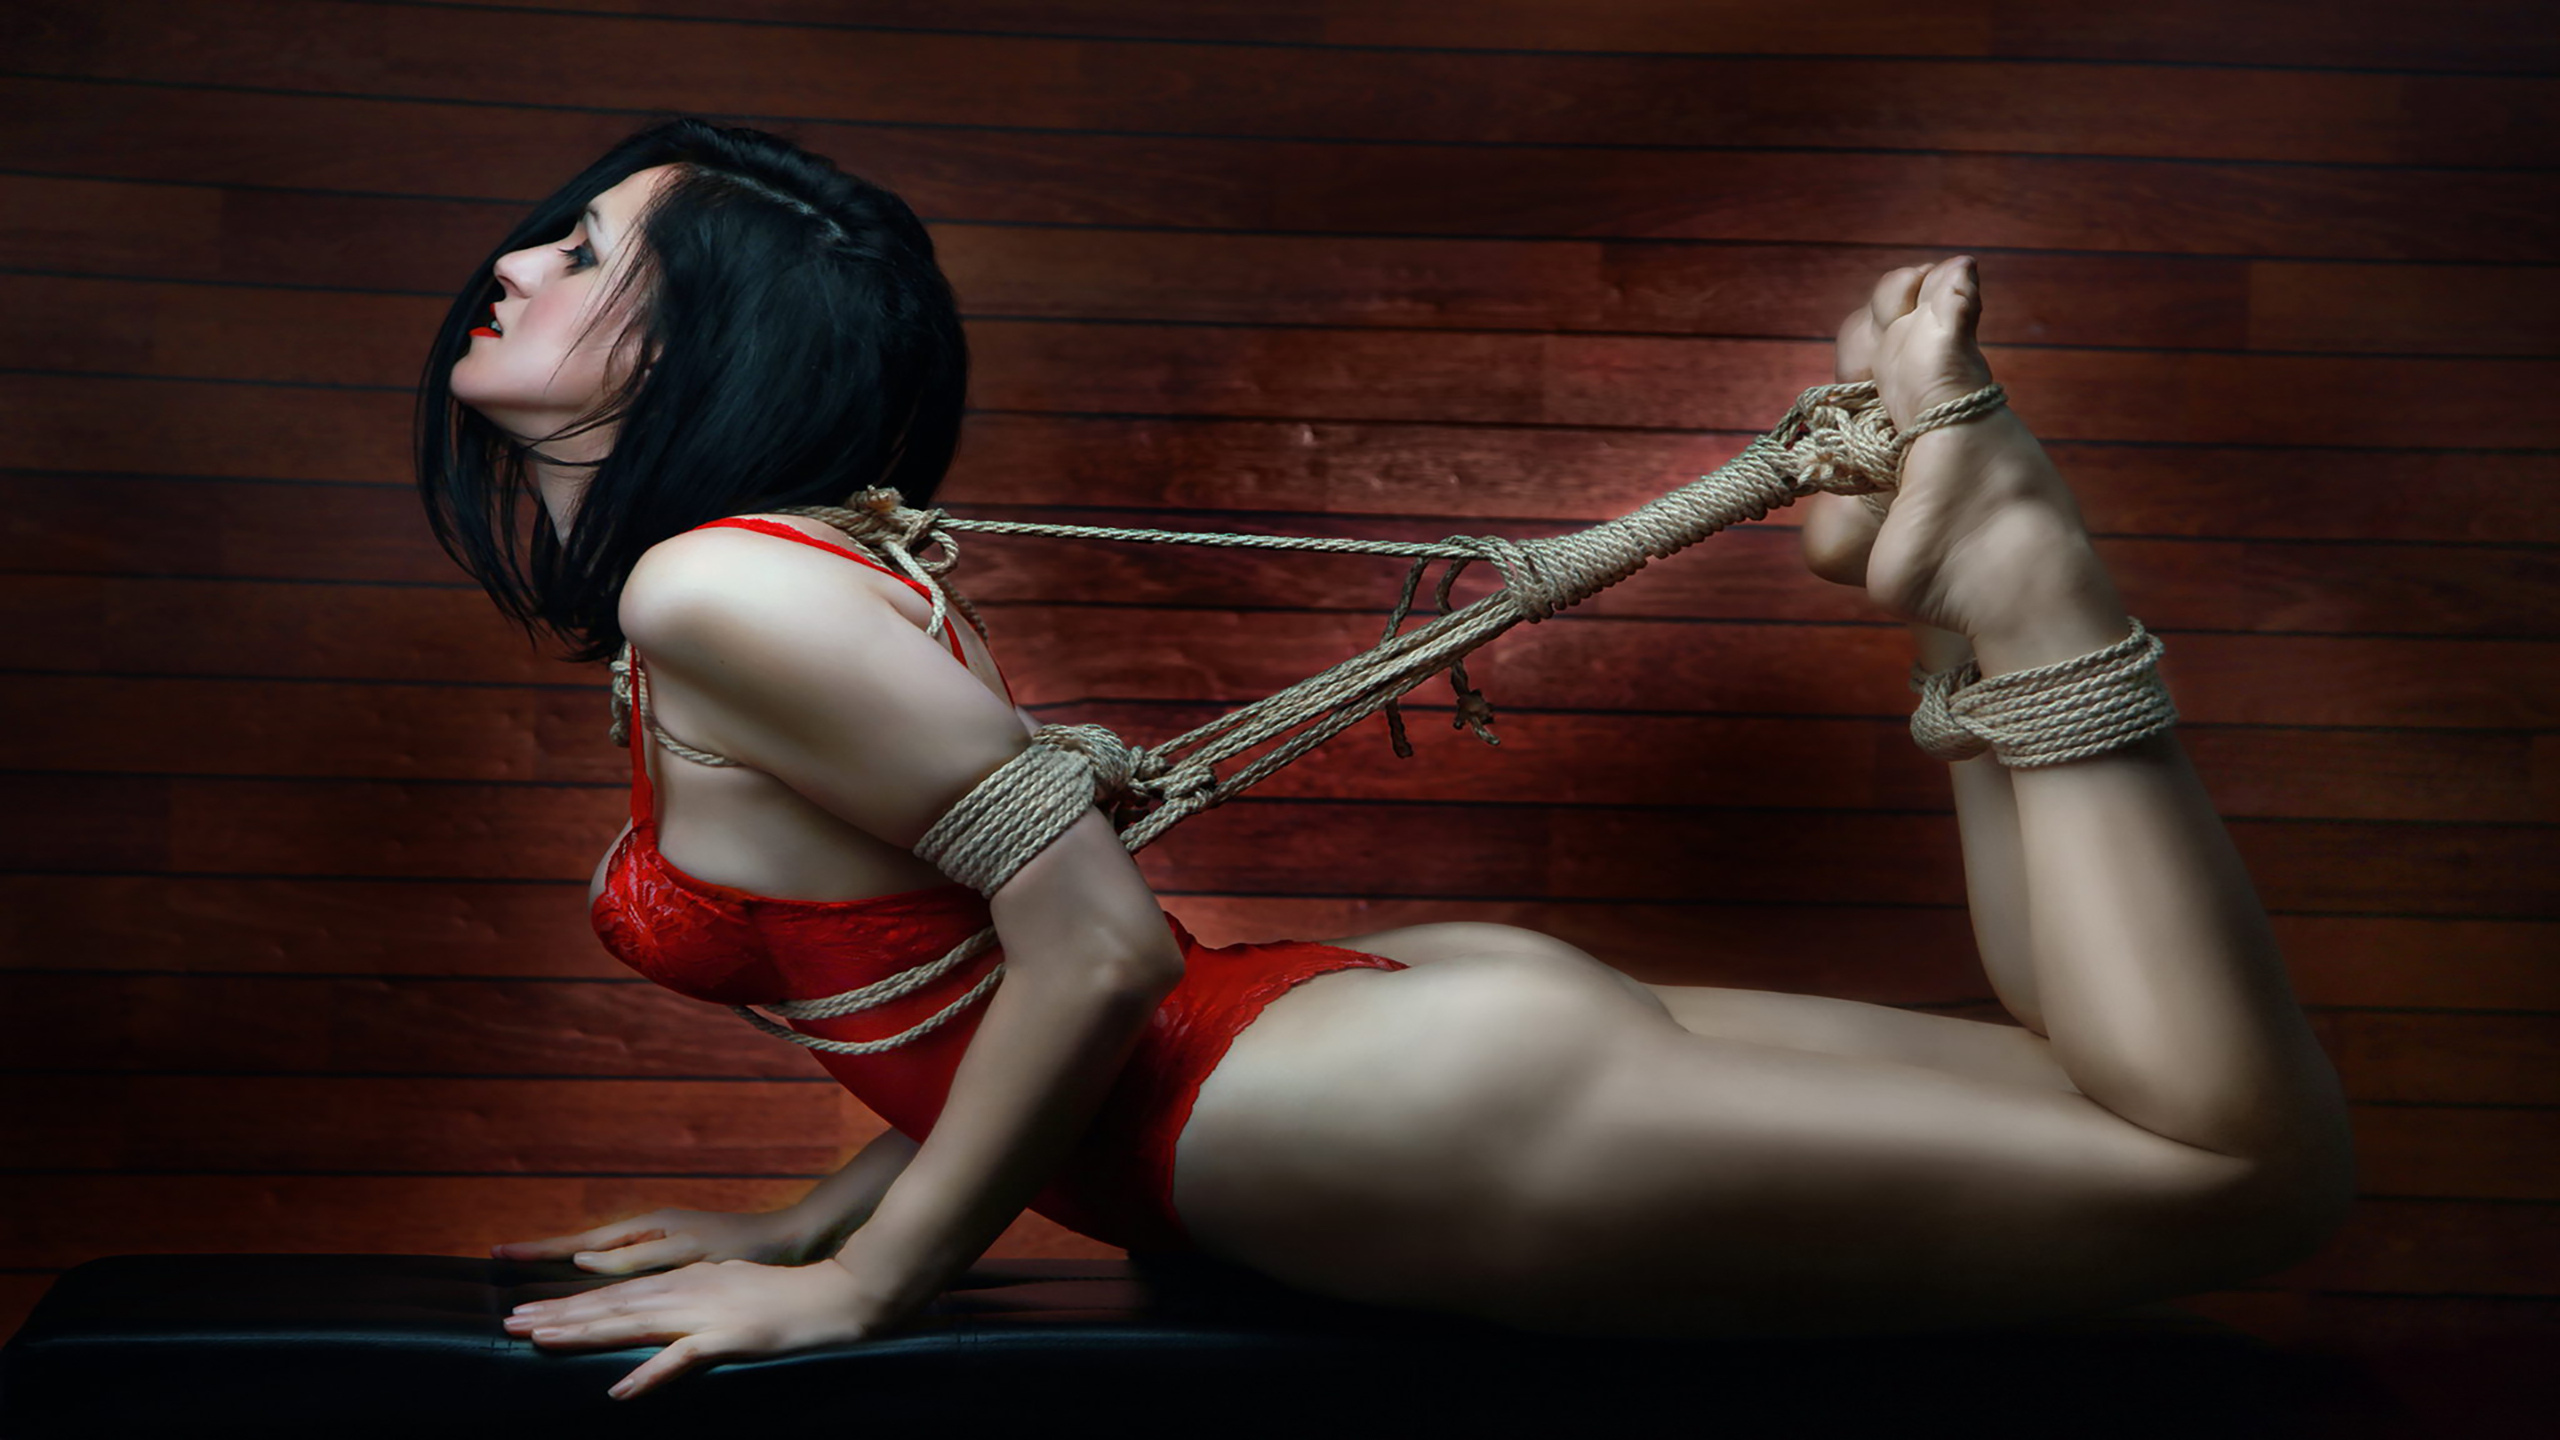 Tale of two bondage models